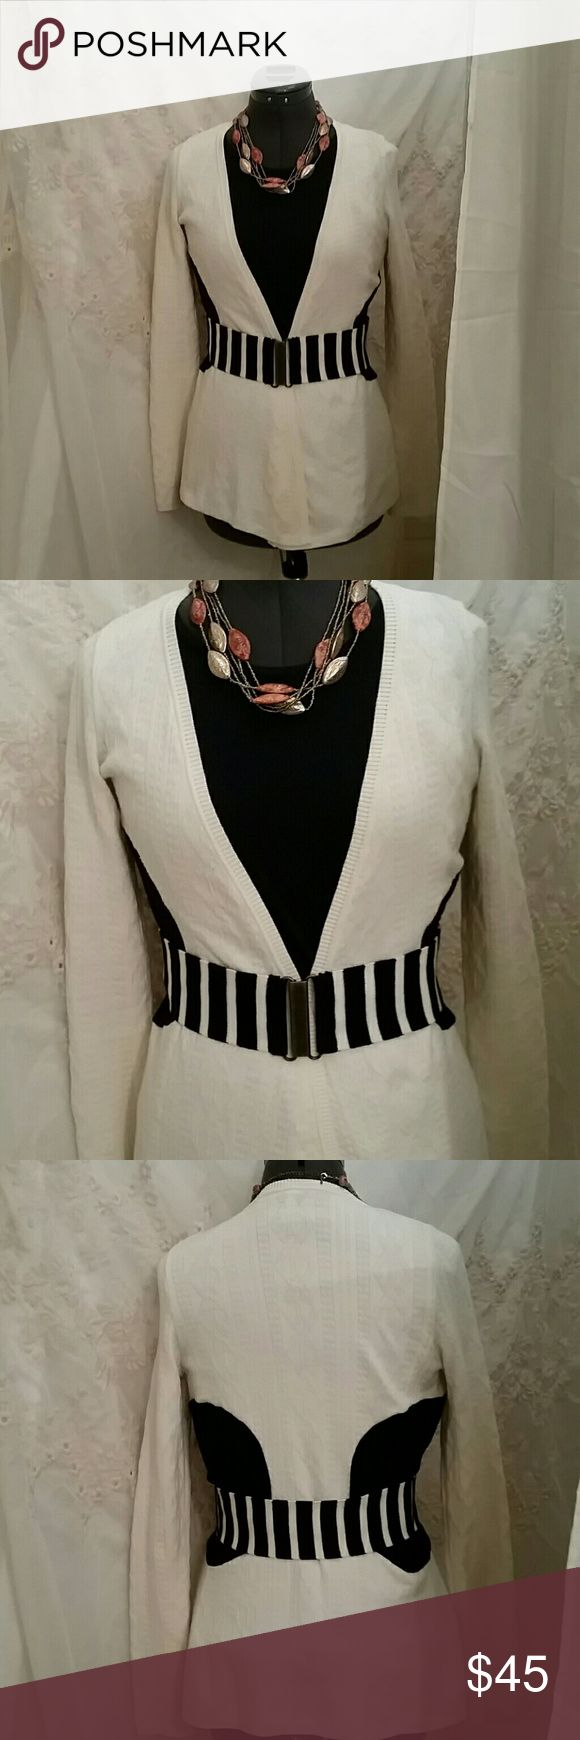 BEAUTIFUL MOTH ANTHRO SWEATER This beautiful belted cardigan is in excellent EUC worn maybe twice. Ivory color with black color blocker on the side ivory and black striped belt . Great addition to your wardrobe. Anthropologie Sweaters Cardigans